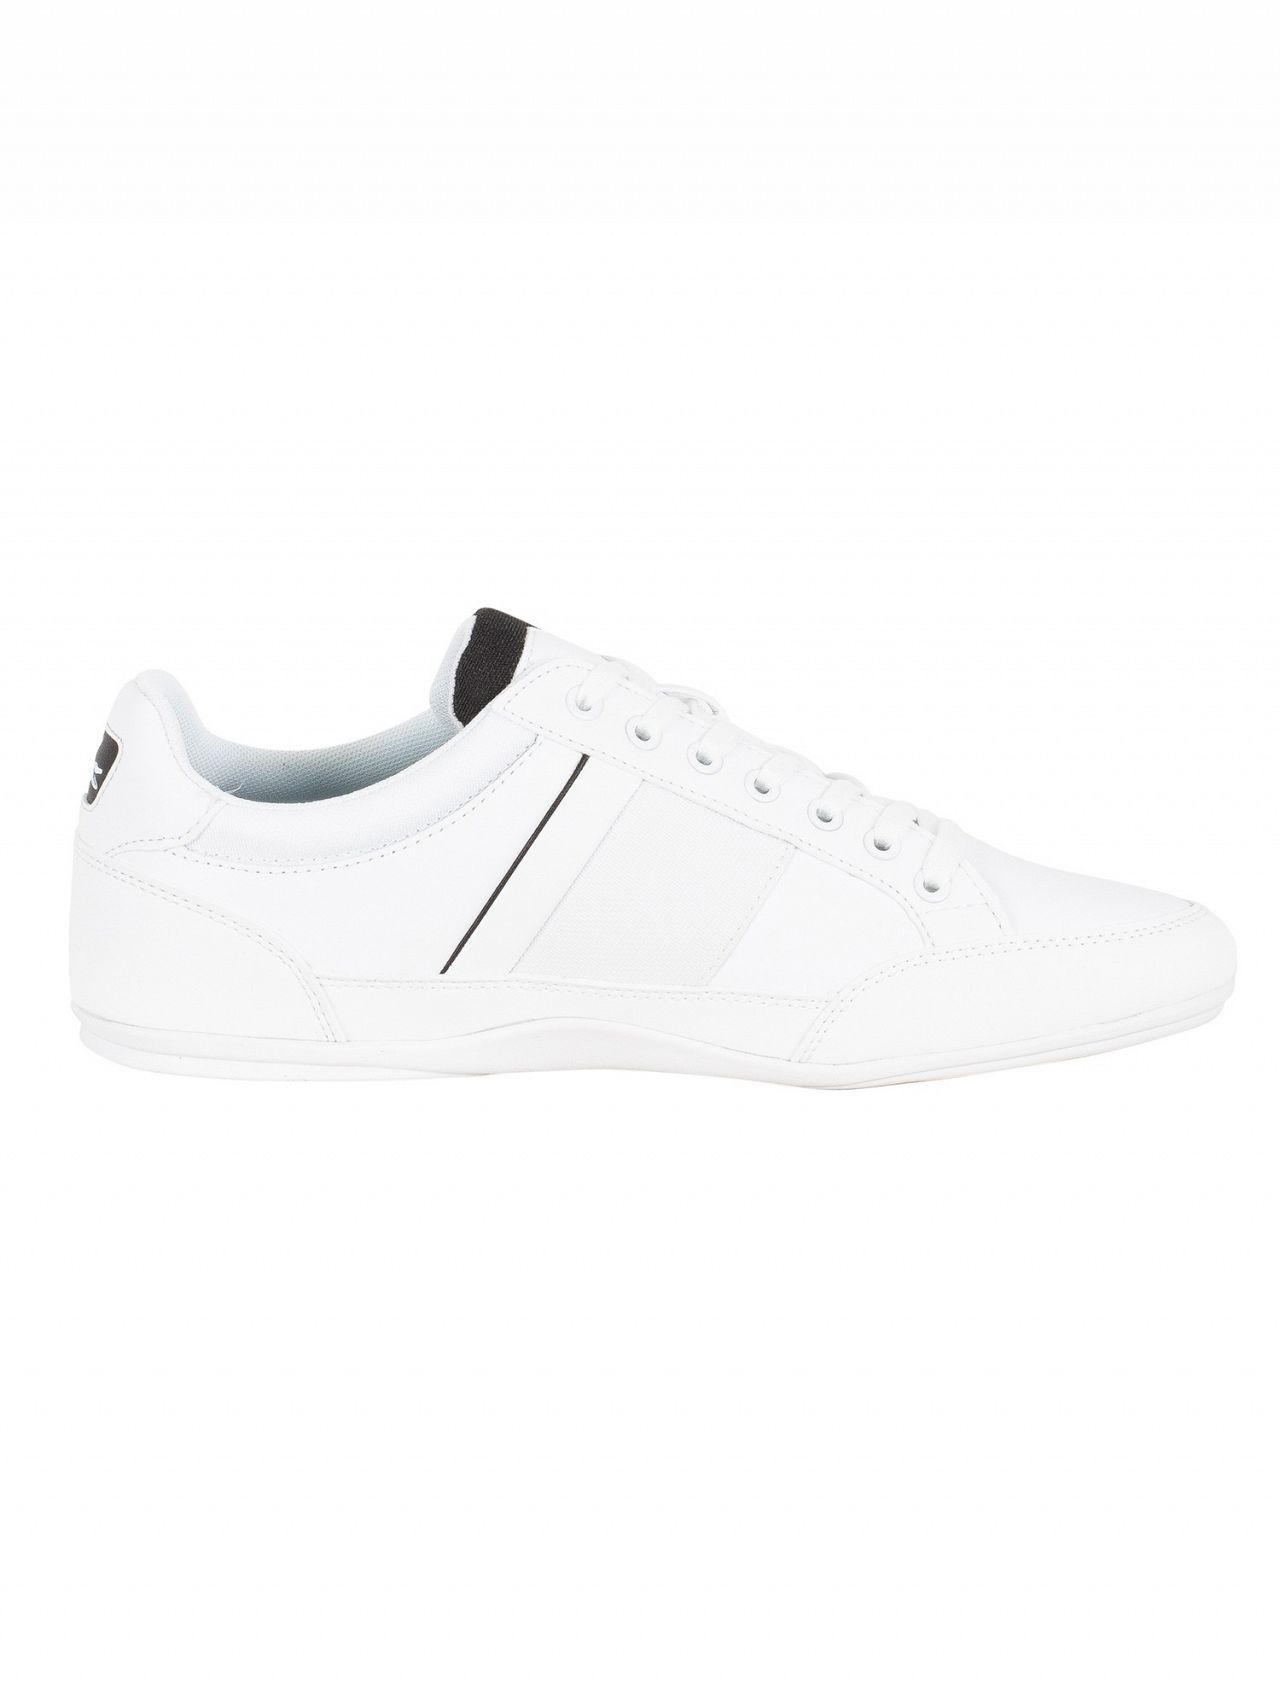 42cd2484252 Lacoste Chaymon 318 4 in White for Men - Lyst